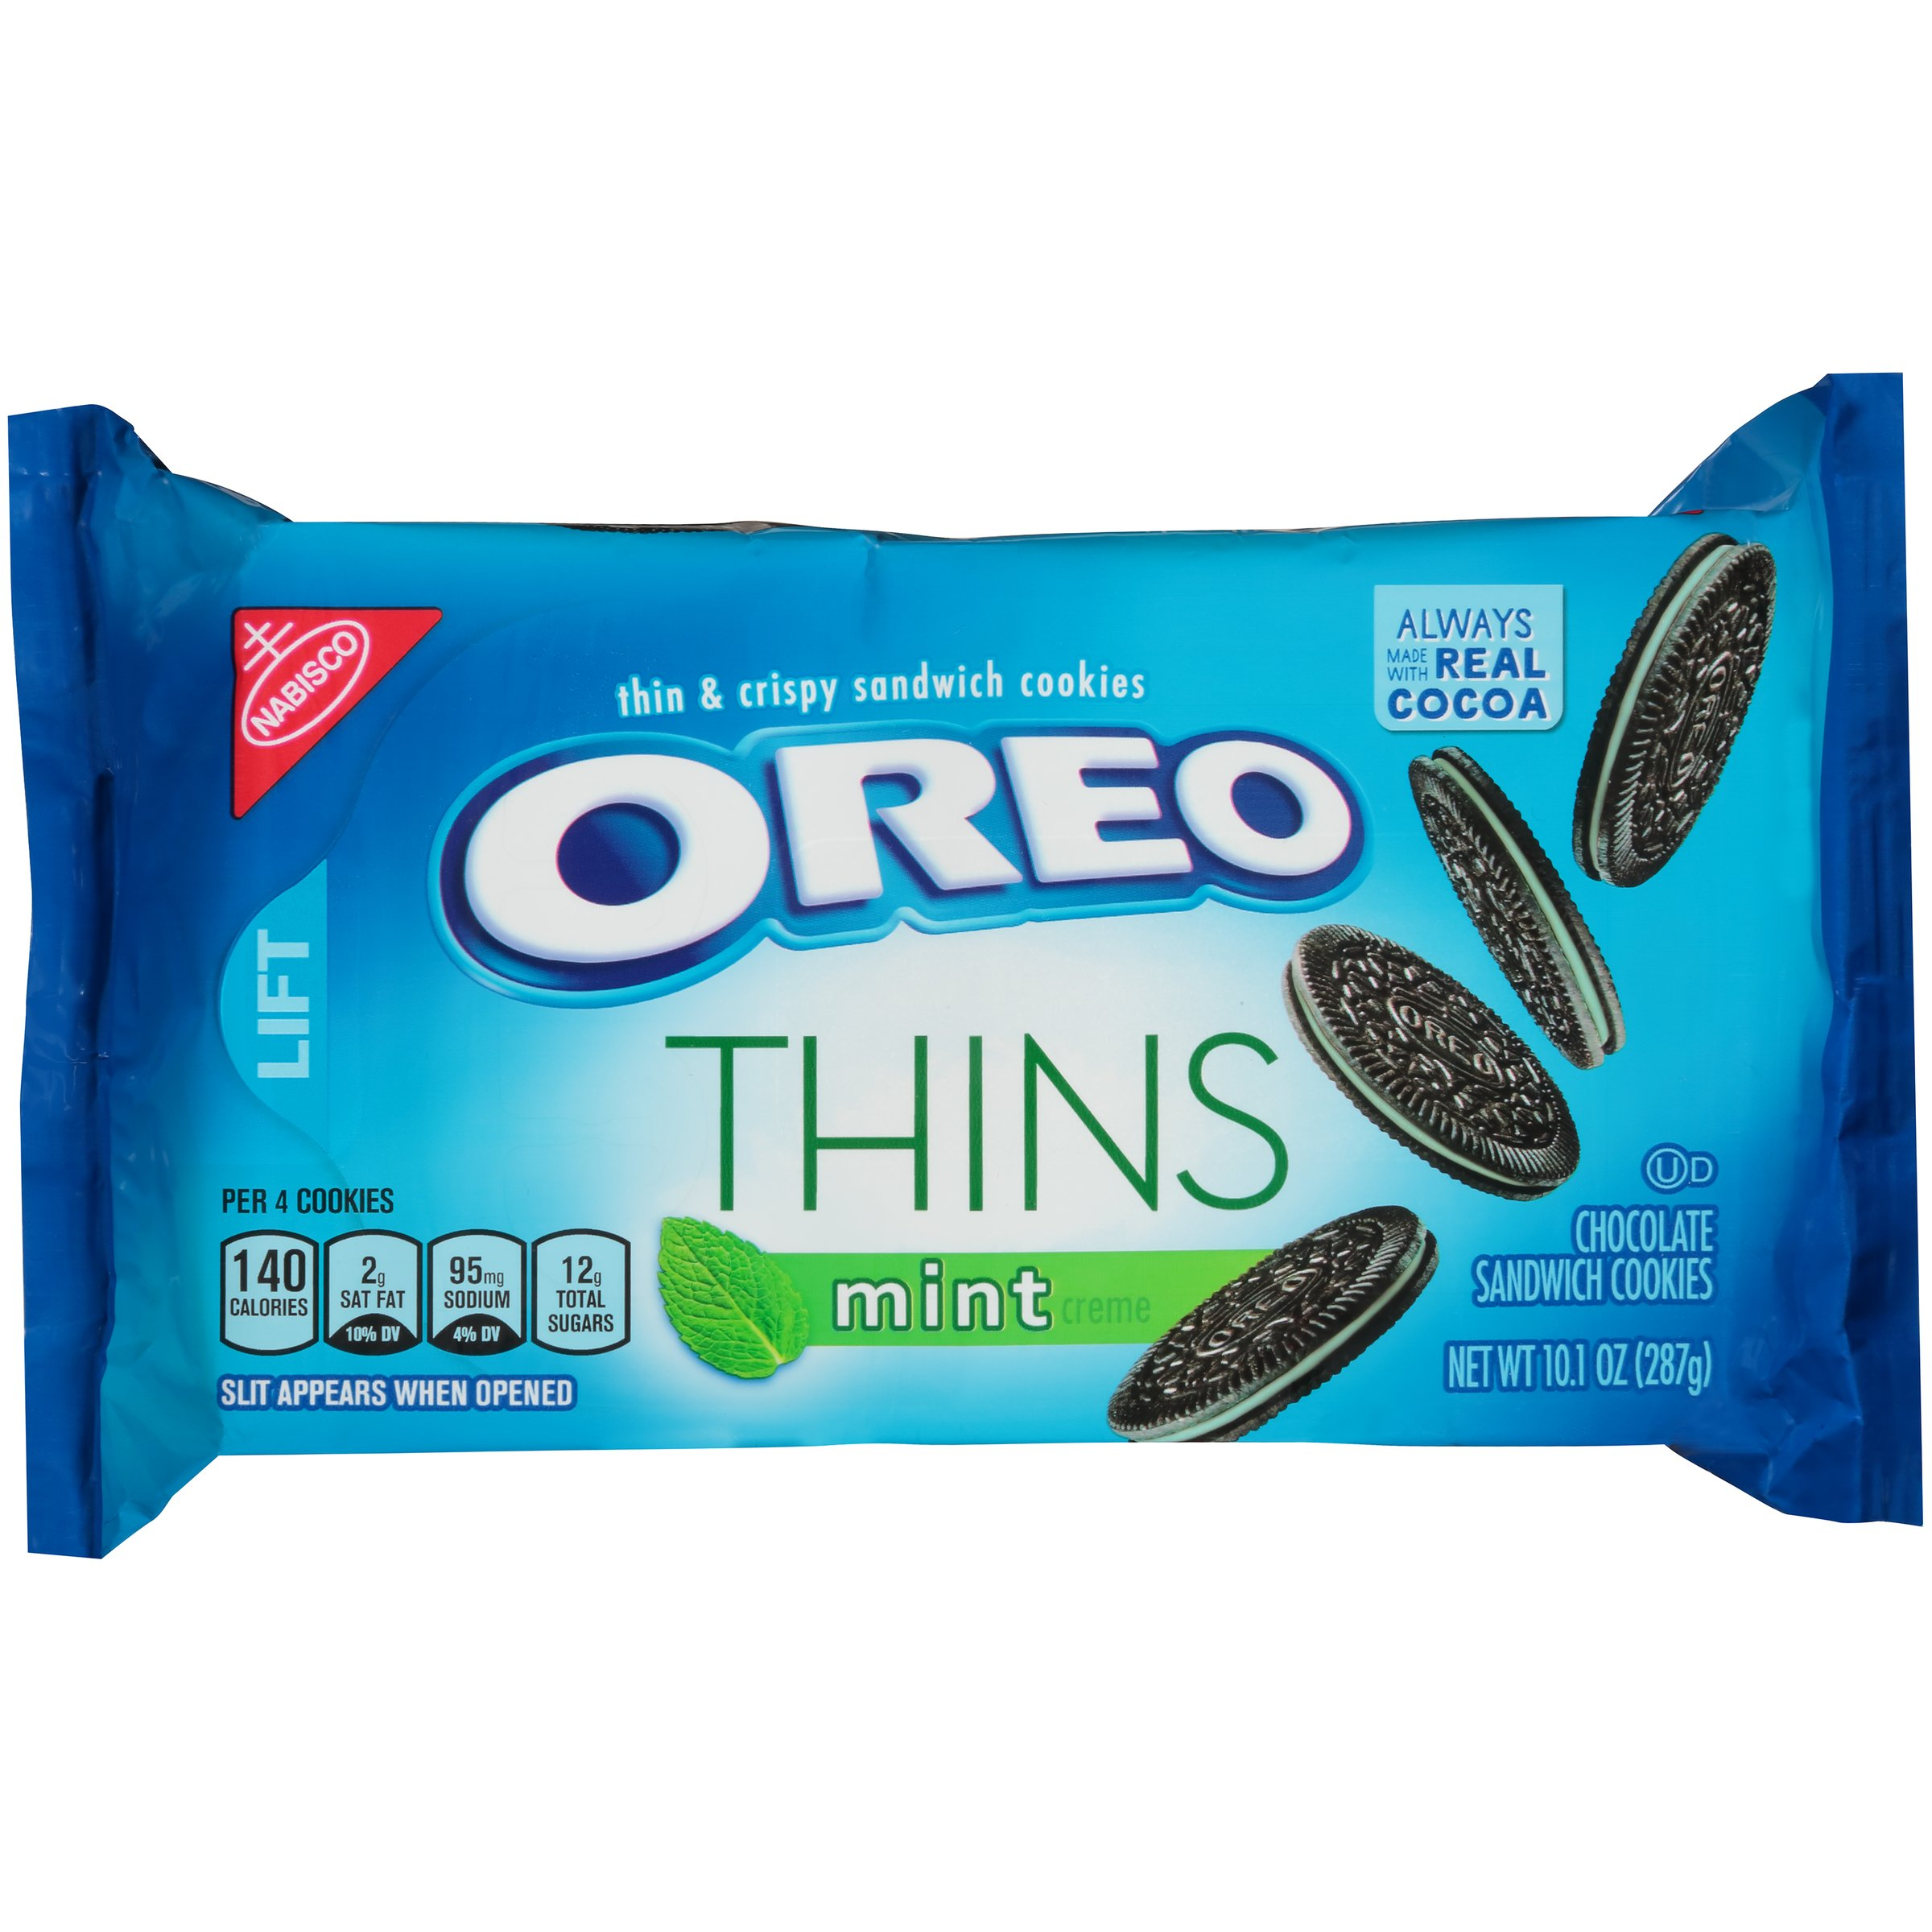 Oreo Thins Mint Creme Chocolate Sandwich Cookies, 10.1 Ounce (Pack of 12)